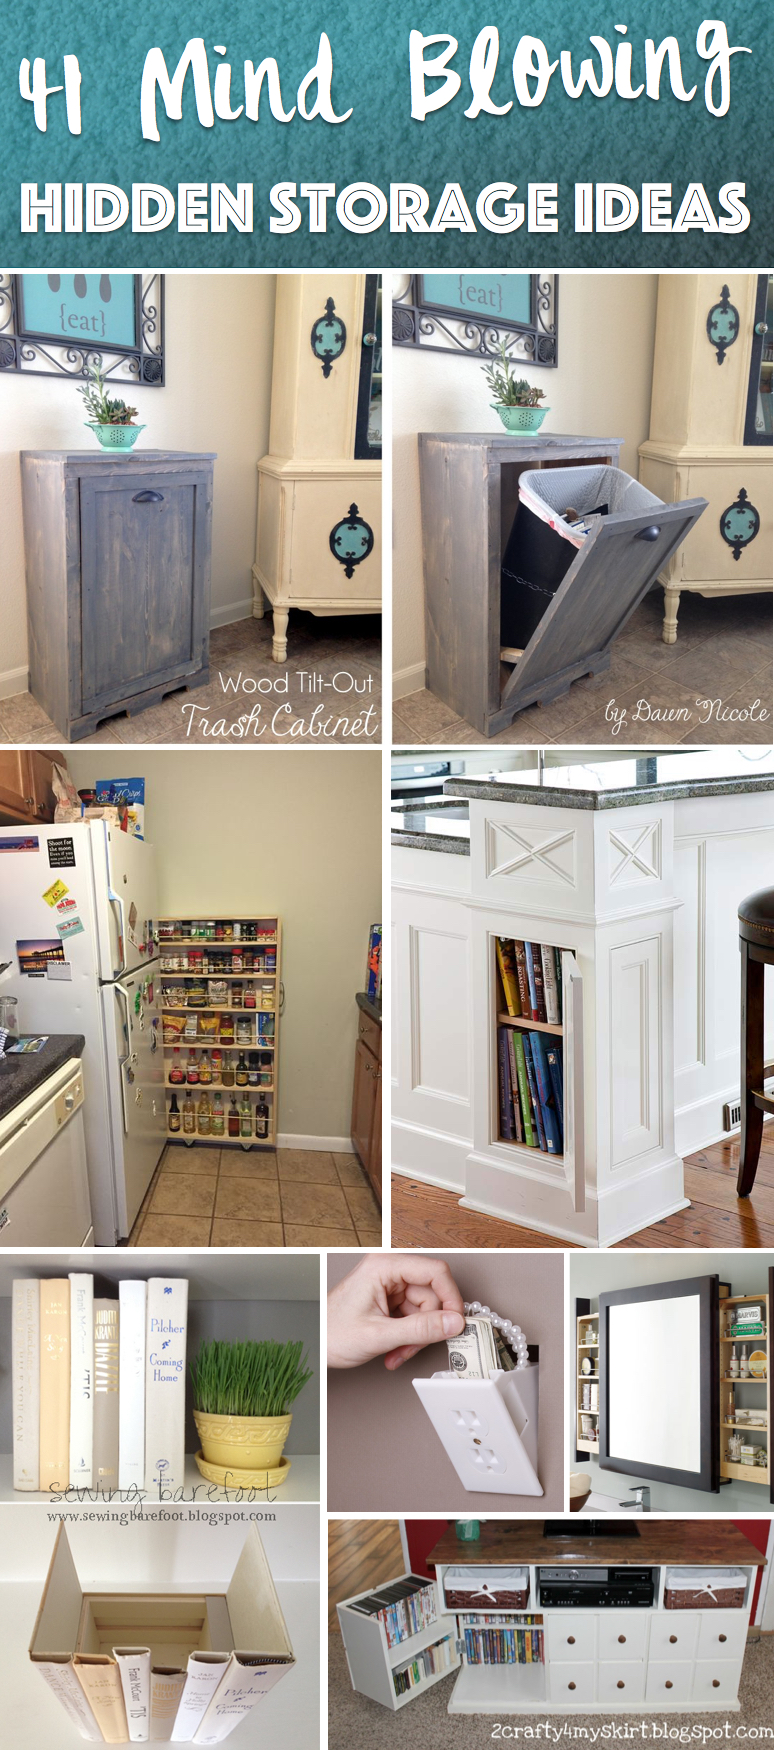 41 mind blowing hidden storage ideas making a clever use of your household space cute diy - Making most of small spaces property ...